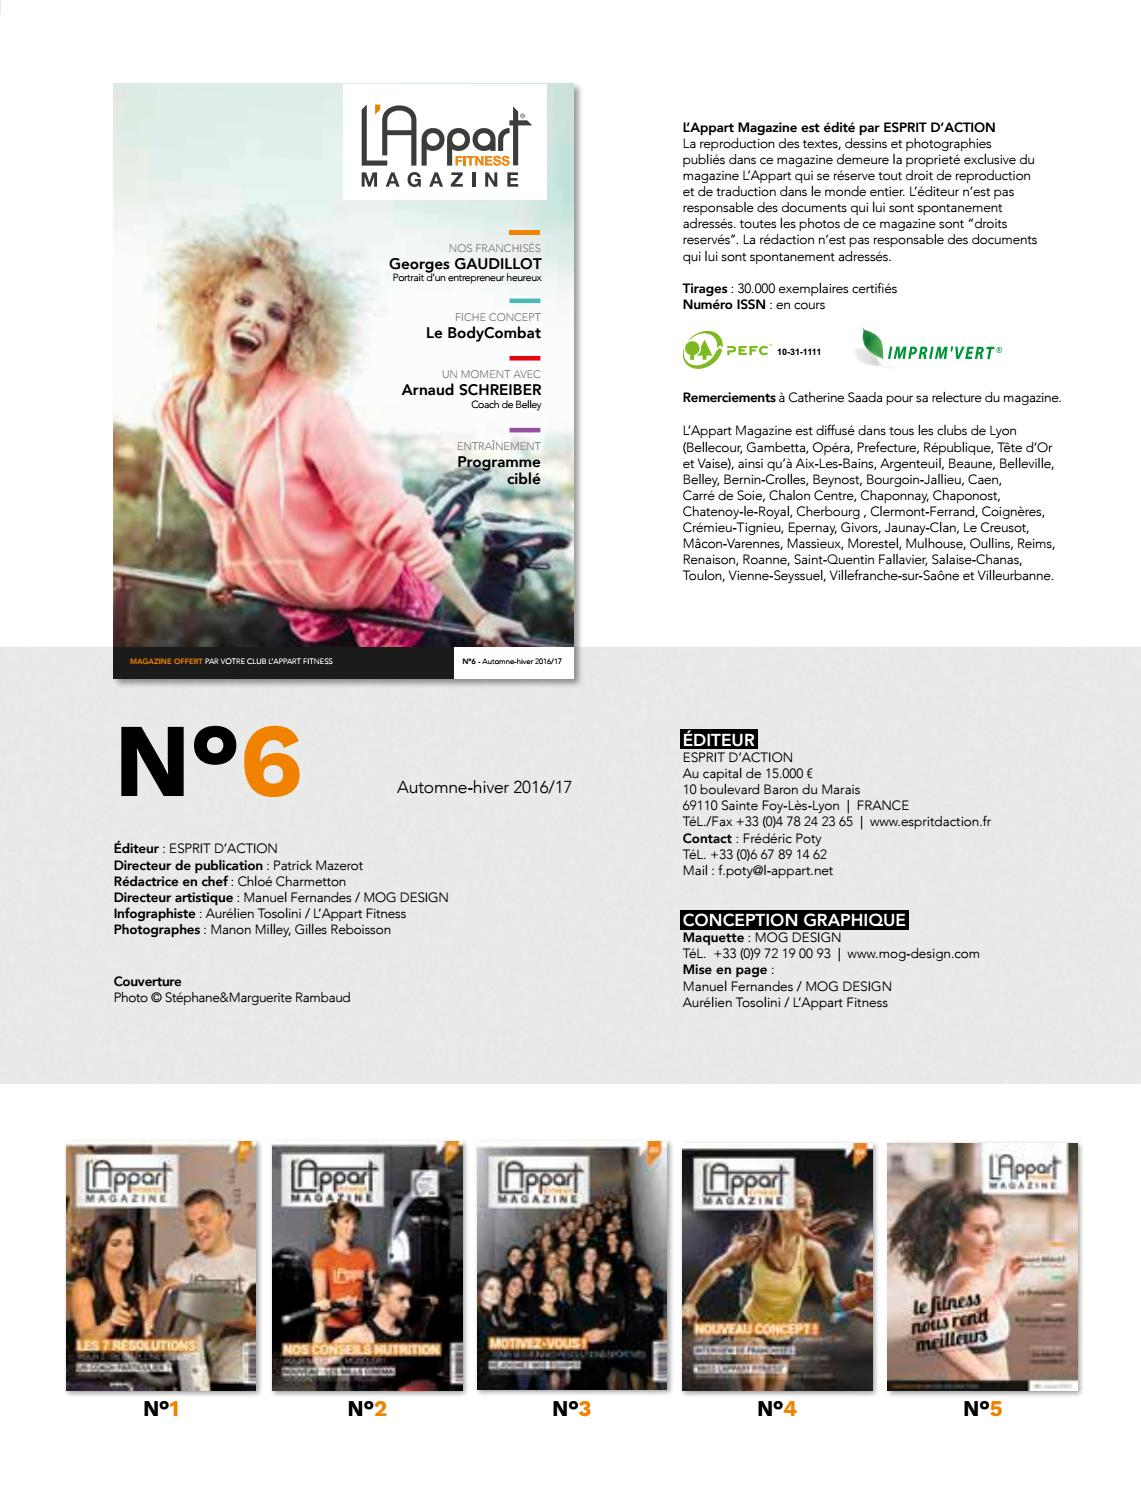 L'APPART FITNESS Magazine # 06 by MOG DESIGN - Issuu